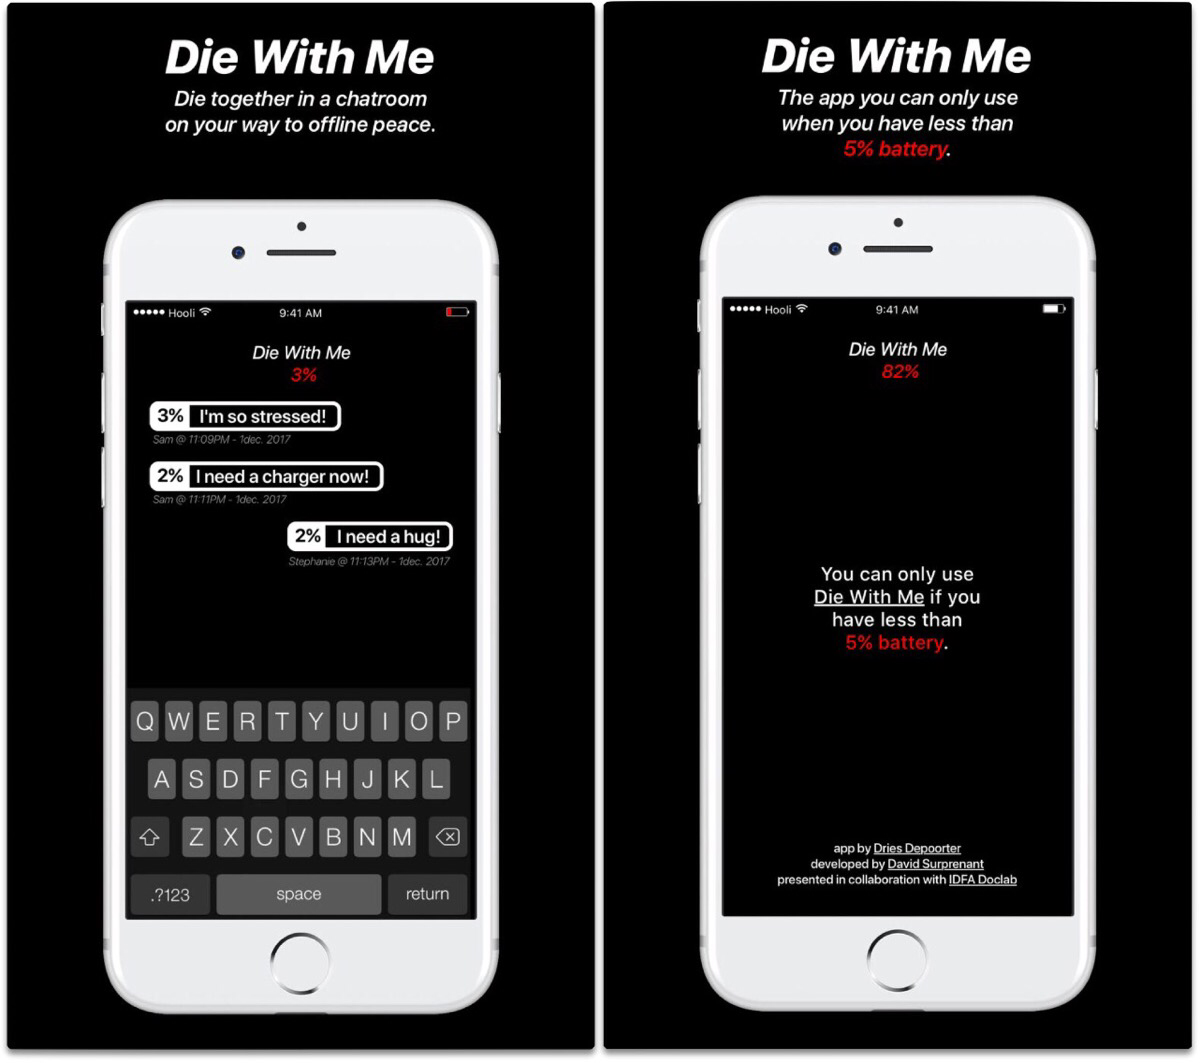 Screenshots of Die With Me low battery chat app.